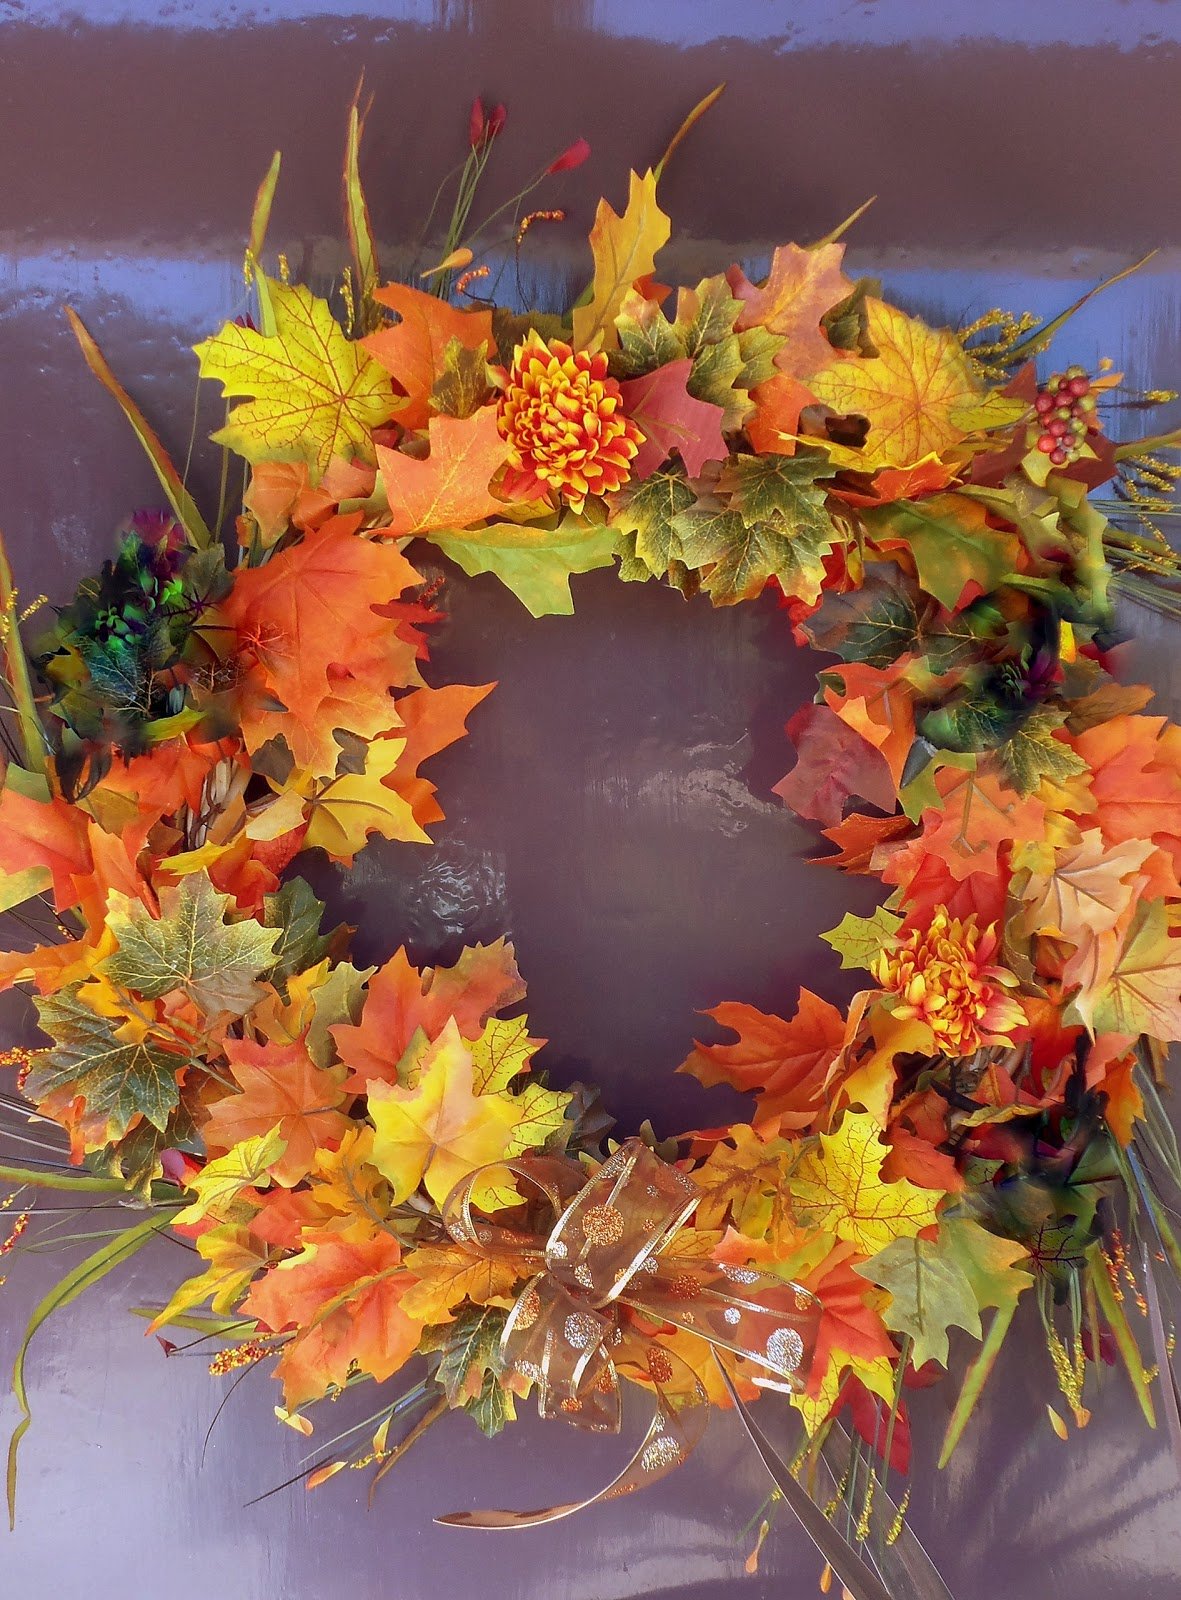 Autumn lights picture autumn homemade decoration ideas for Autumn decoration